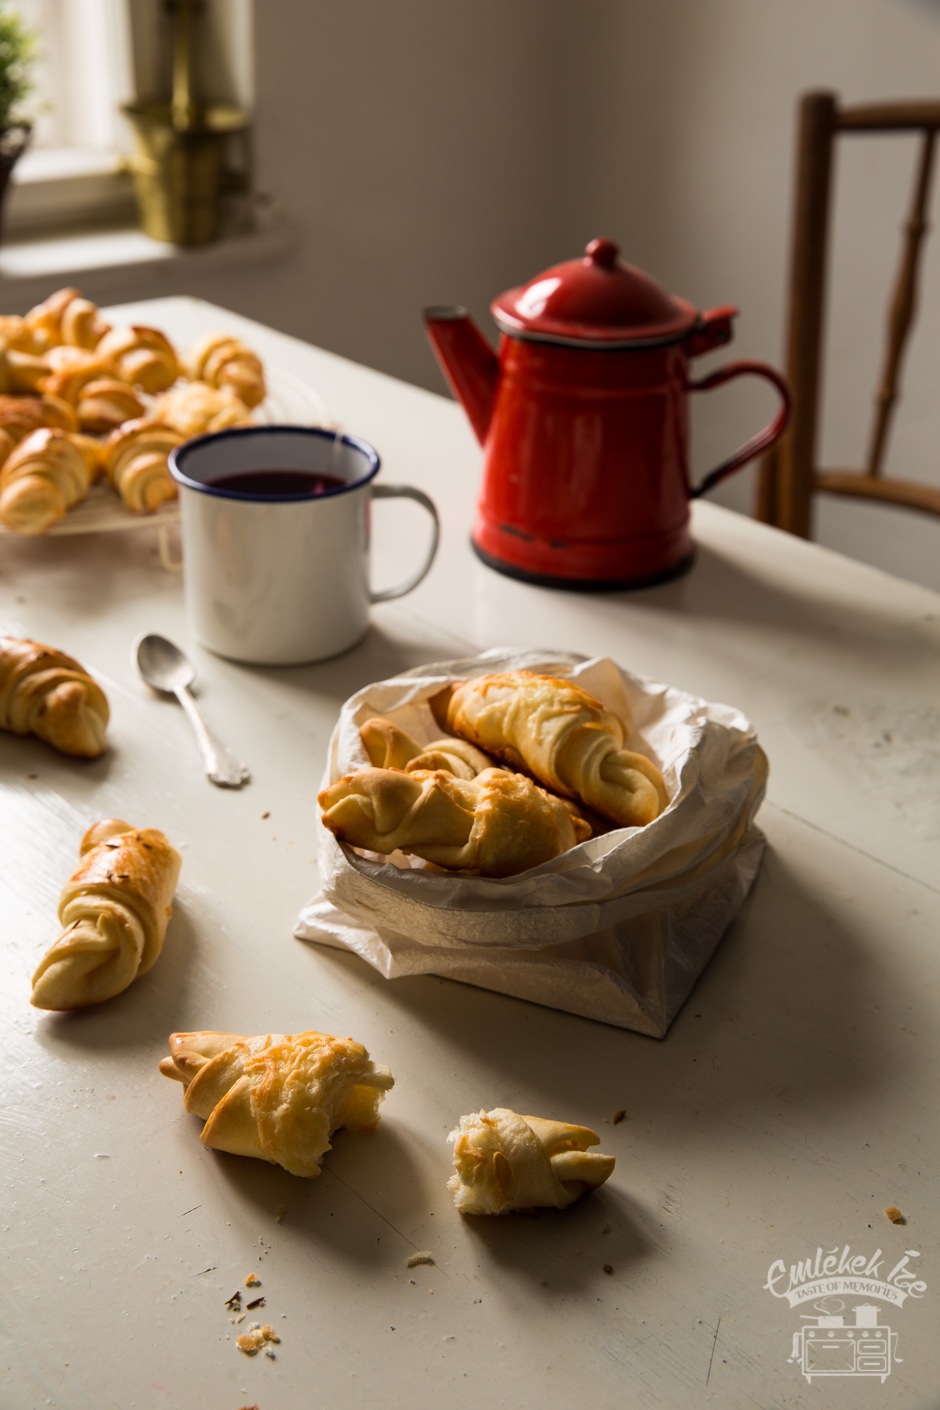 Hungarian savoury crescent cookies from the Taste of Memories kitchen